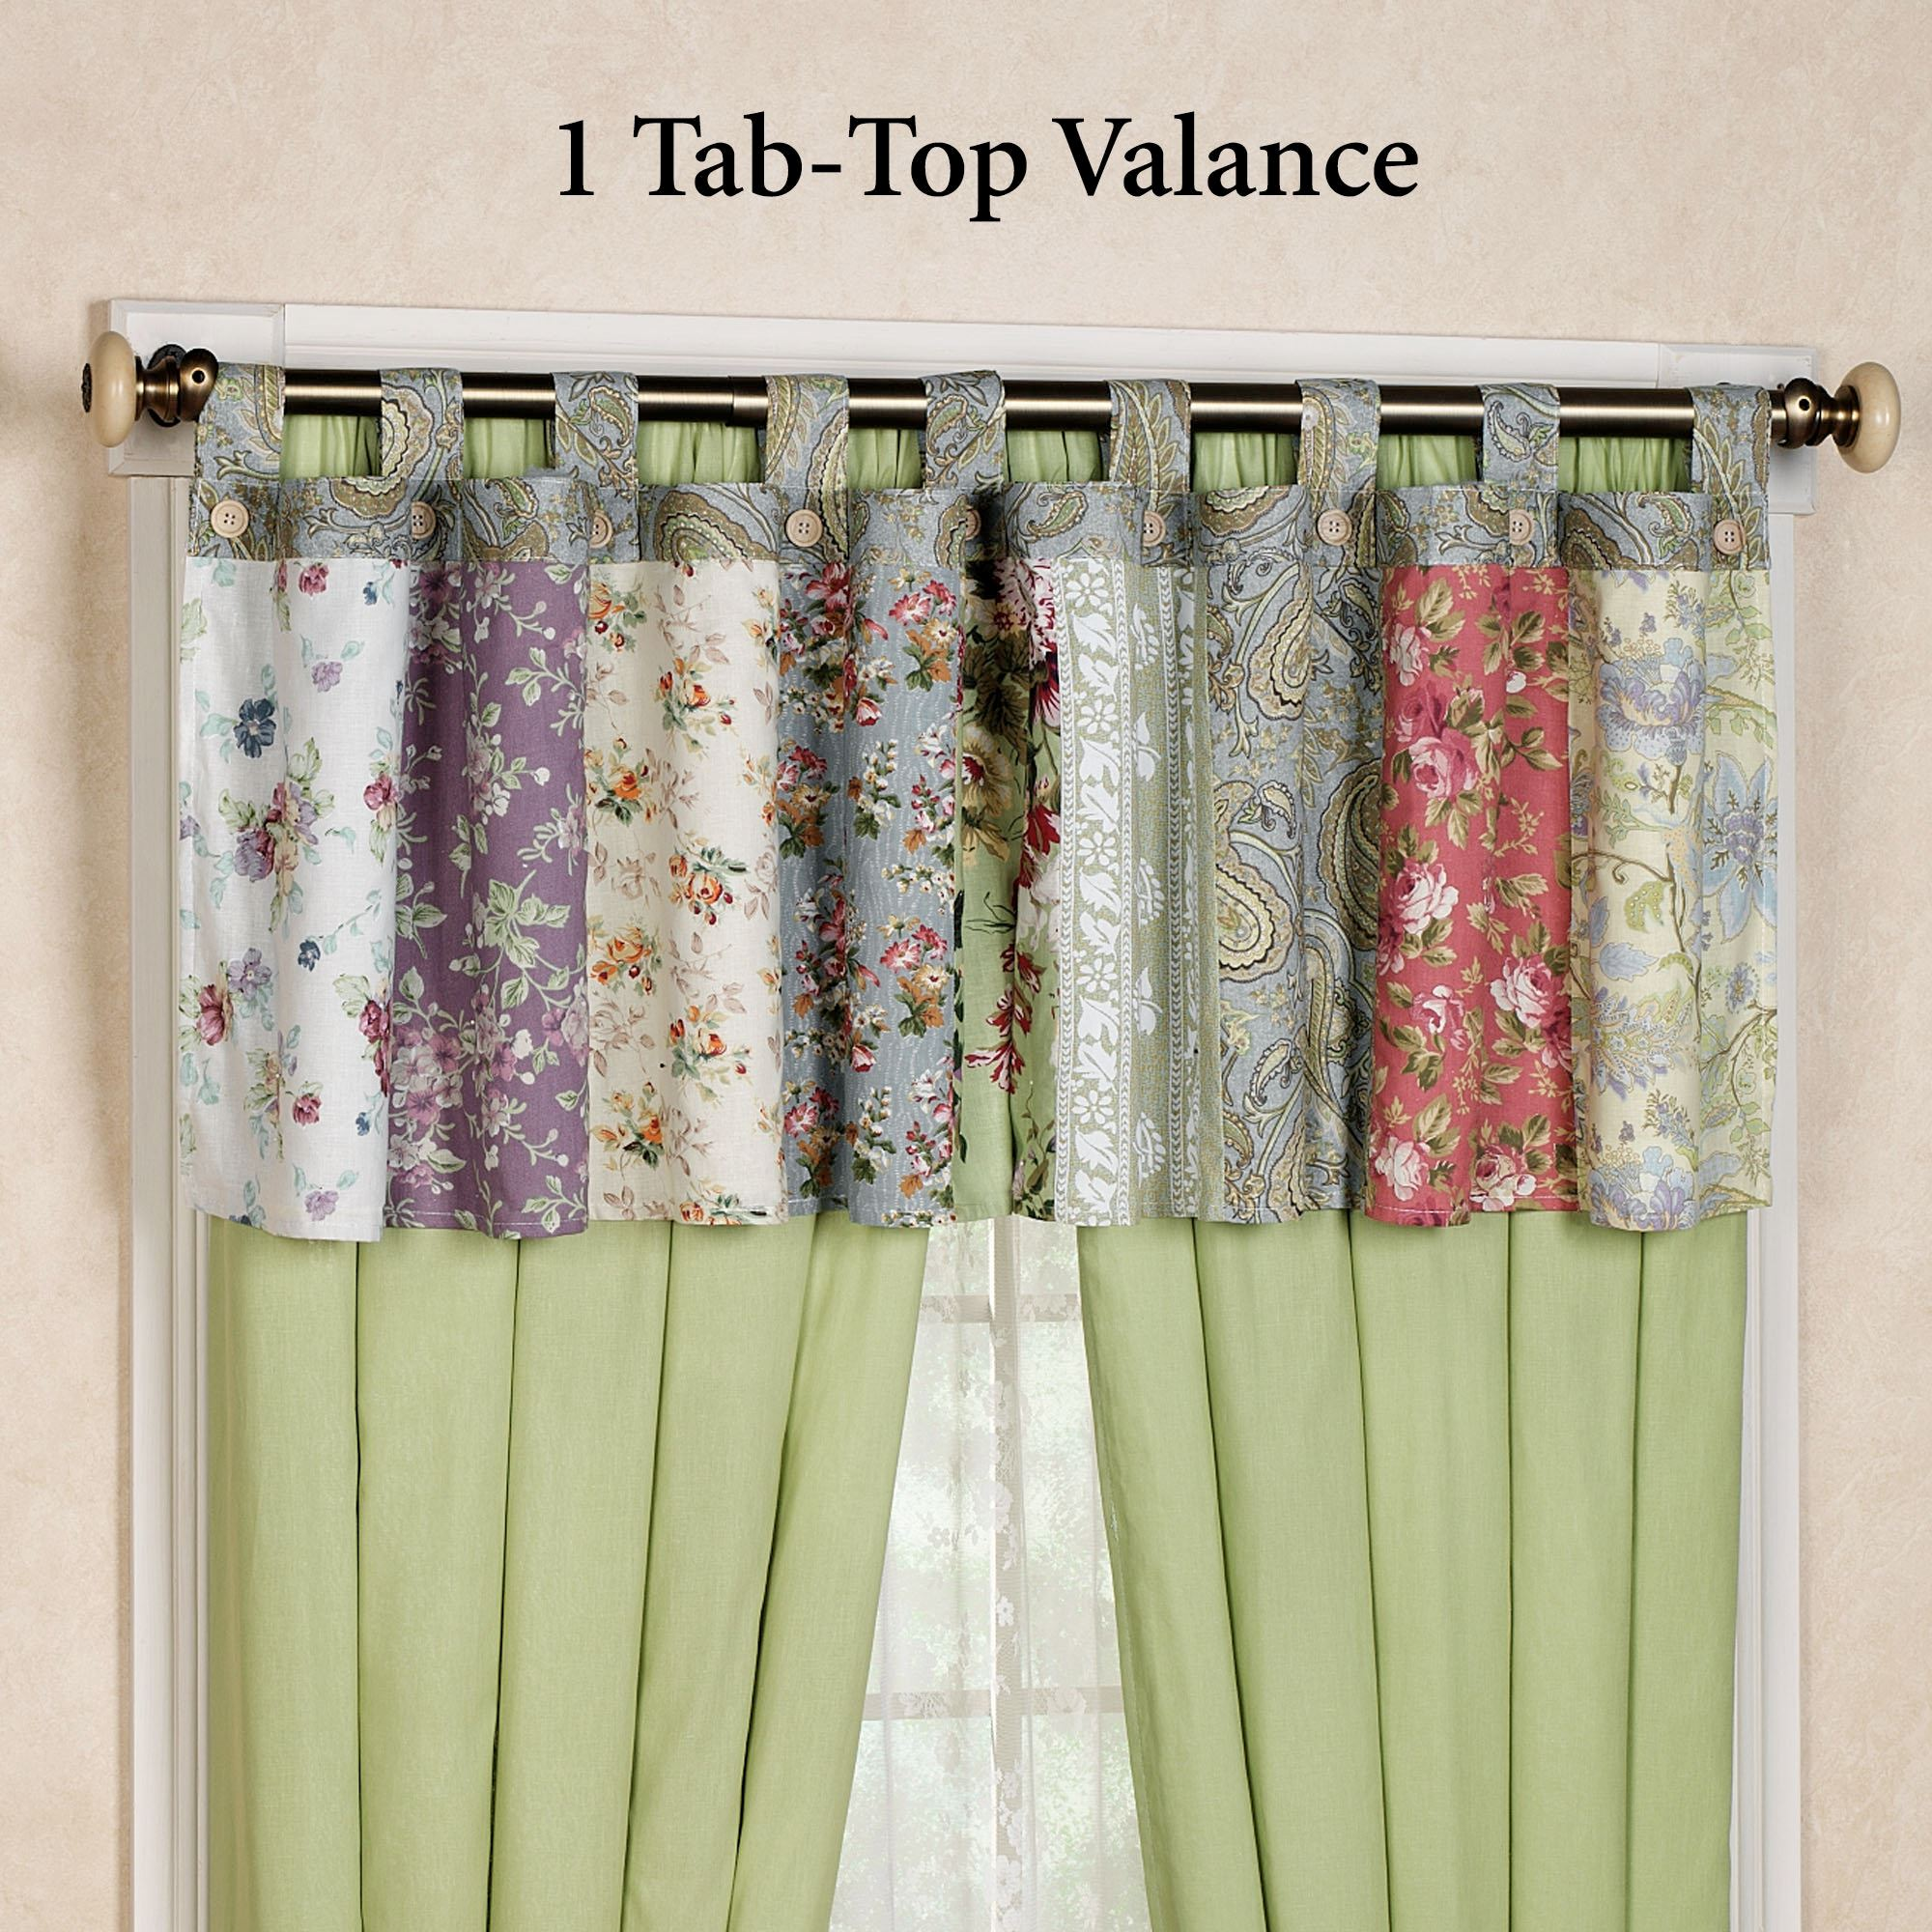 aligning curtain linen drapes image tie top panels ideas of charter corners picture home